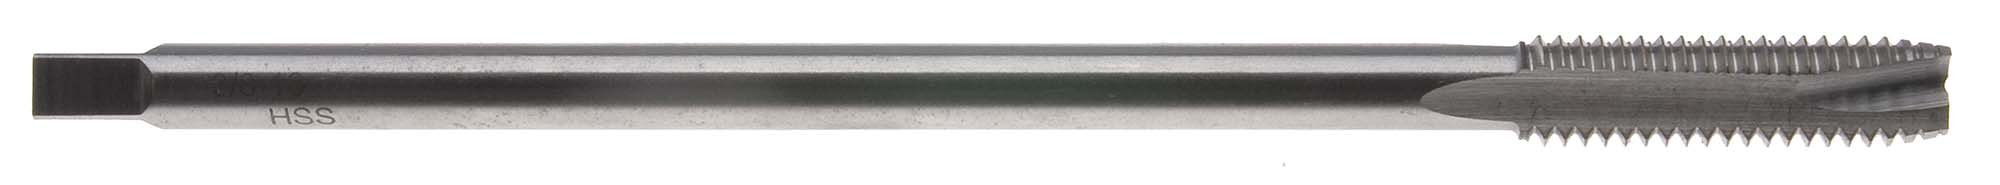 5/16-18 x 6'' Long Spiral Point Tap with Undercut Shank, High Speed Steel